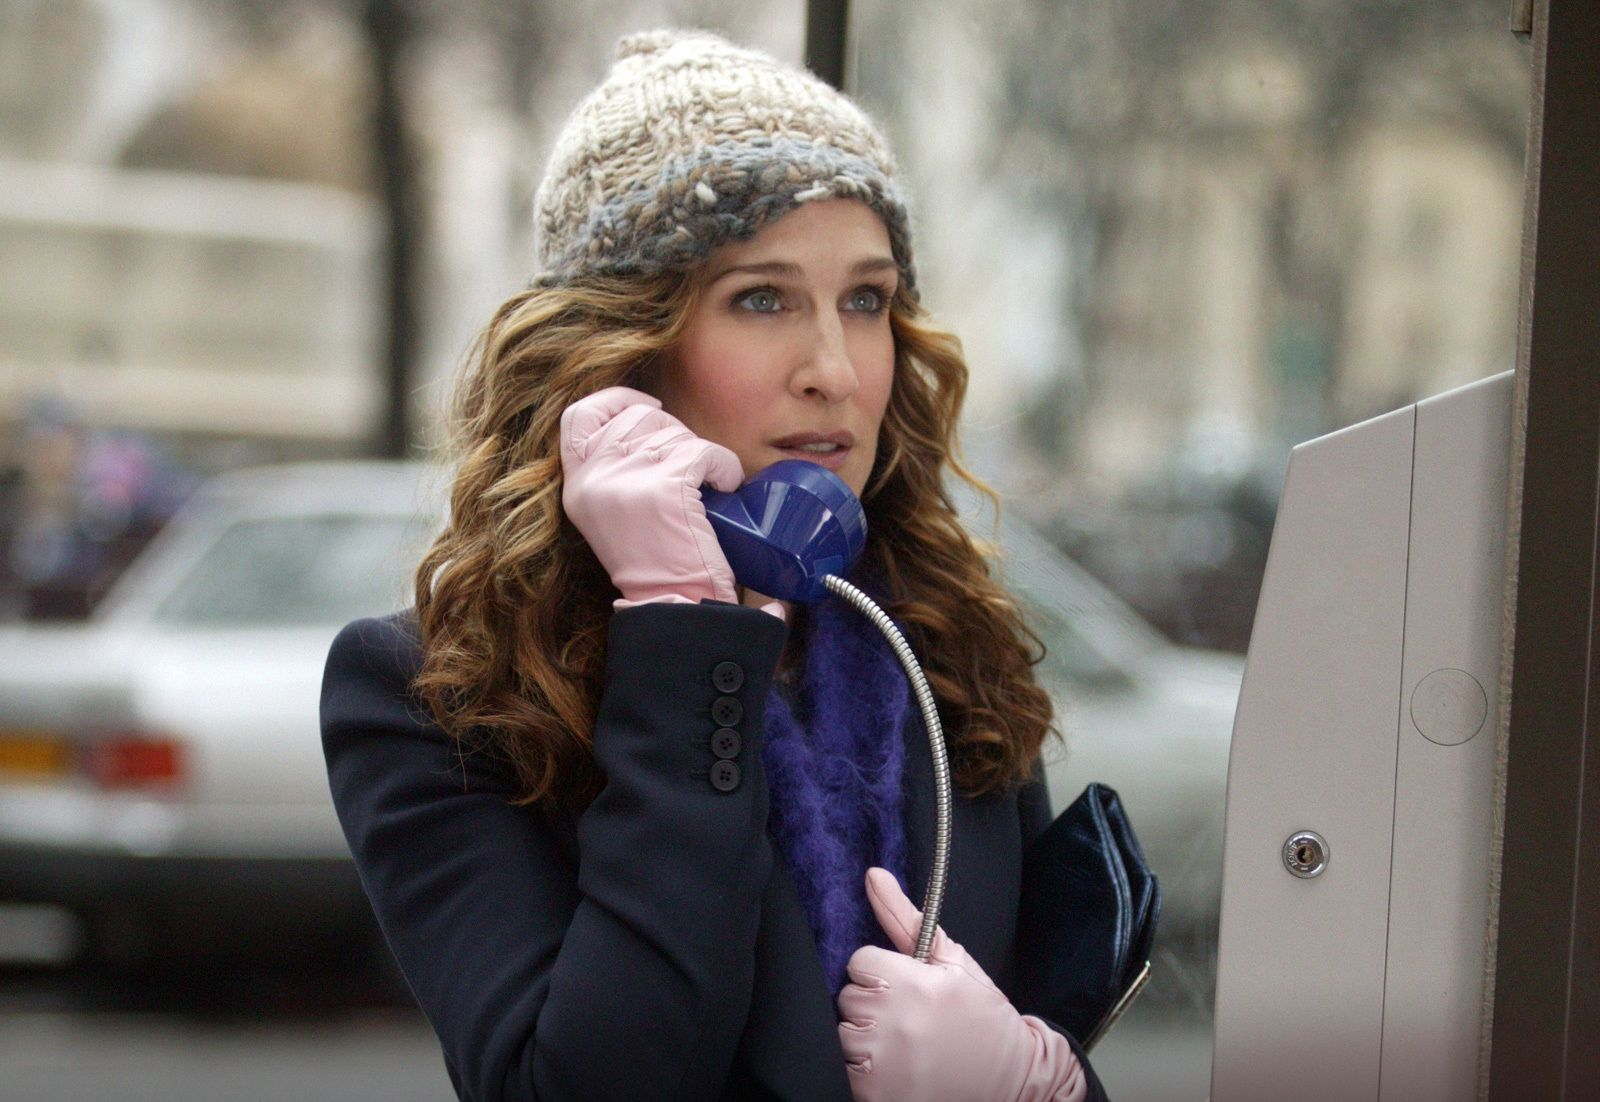 Discussion on this topic: Carrie Bradshaw: Beauty Star, carrie-bradshaw-beauty-star/